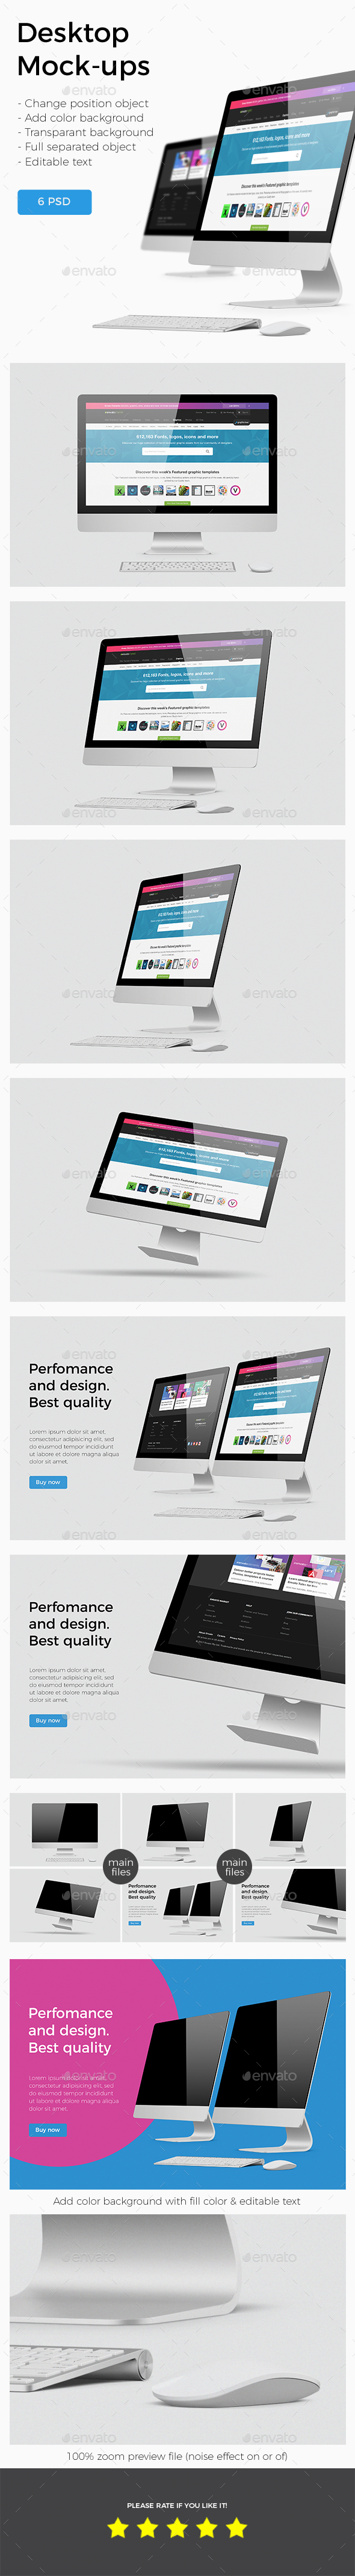 GraphicRiver Imac Desktop Screen Mockup 20964217